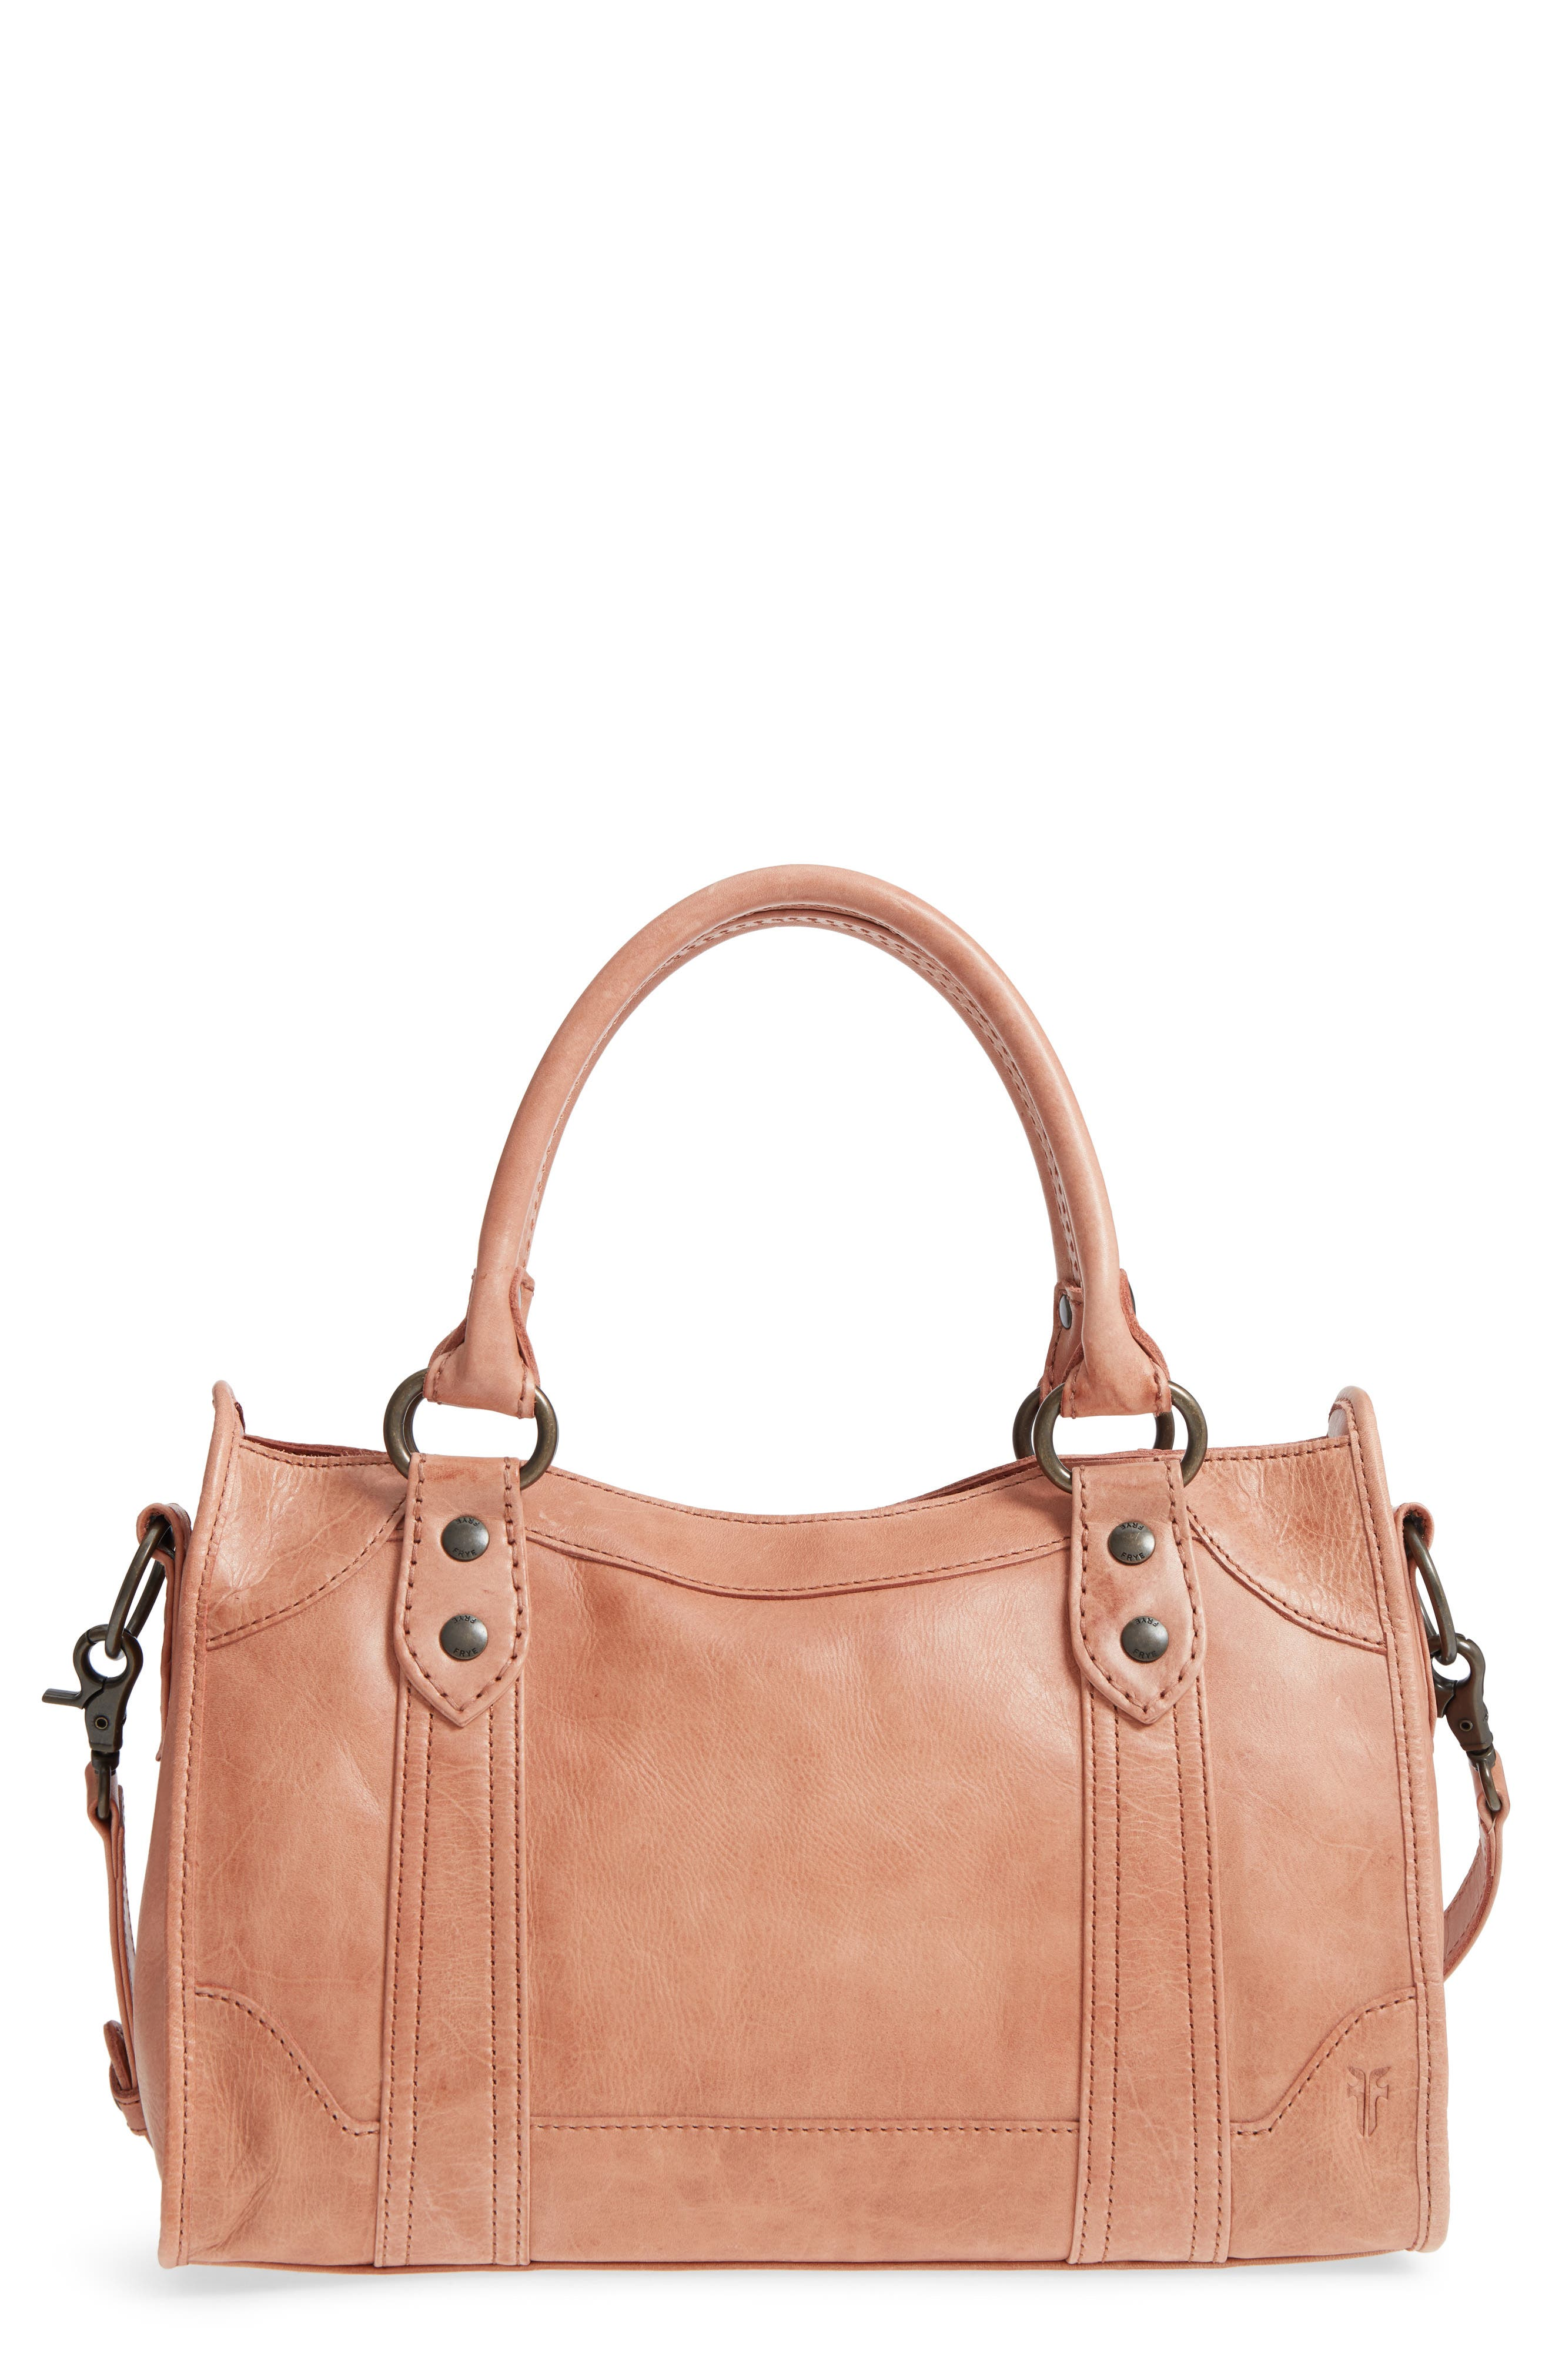 'Melissa' Washed Leather Satchel,                         Main,                         color, DUSTY ROSE